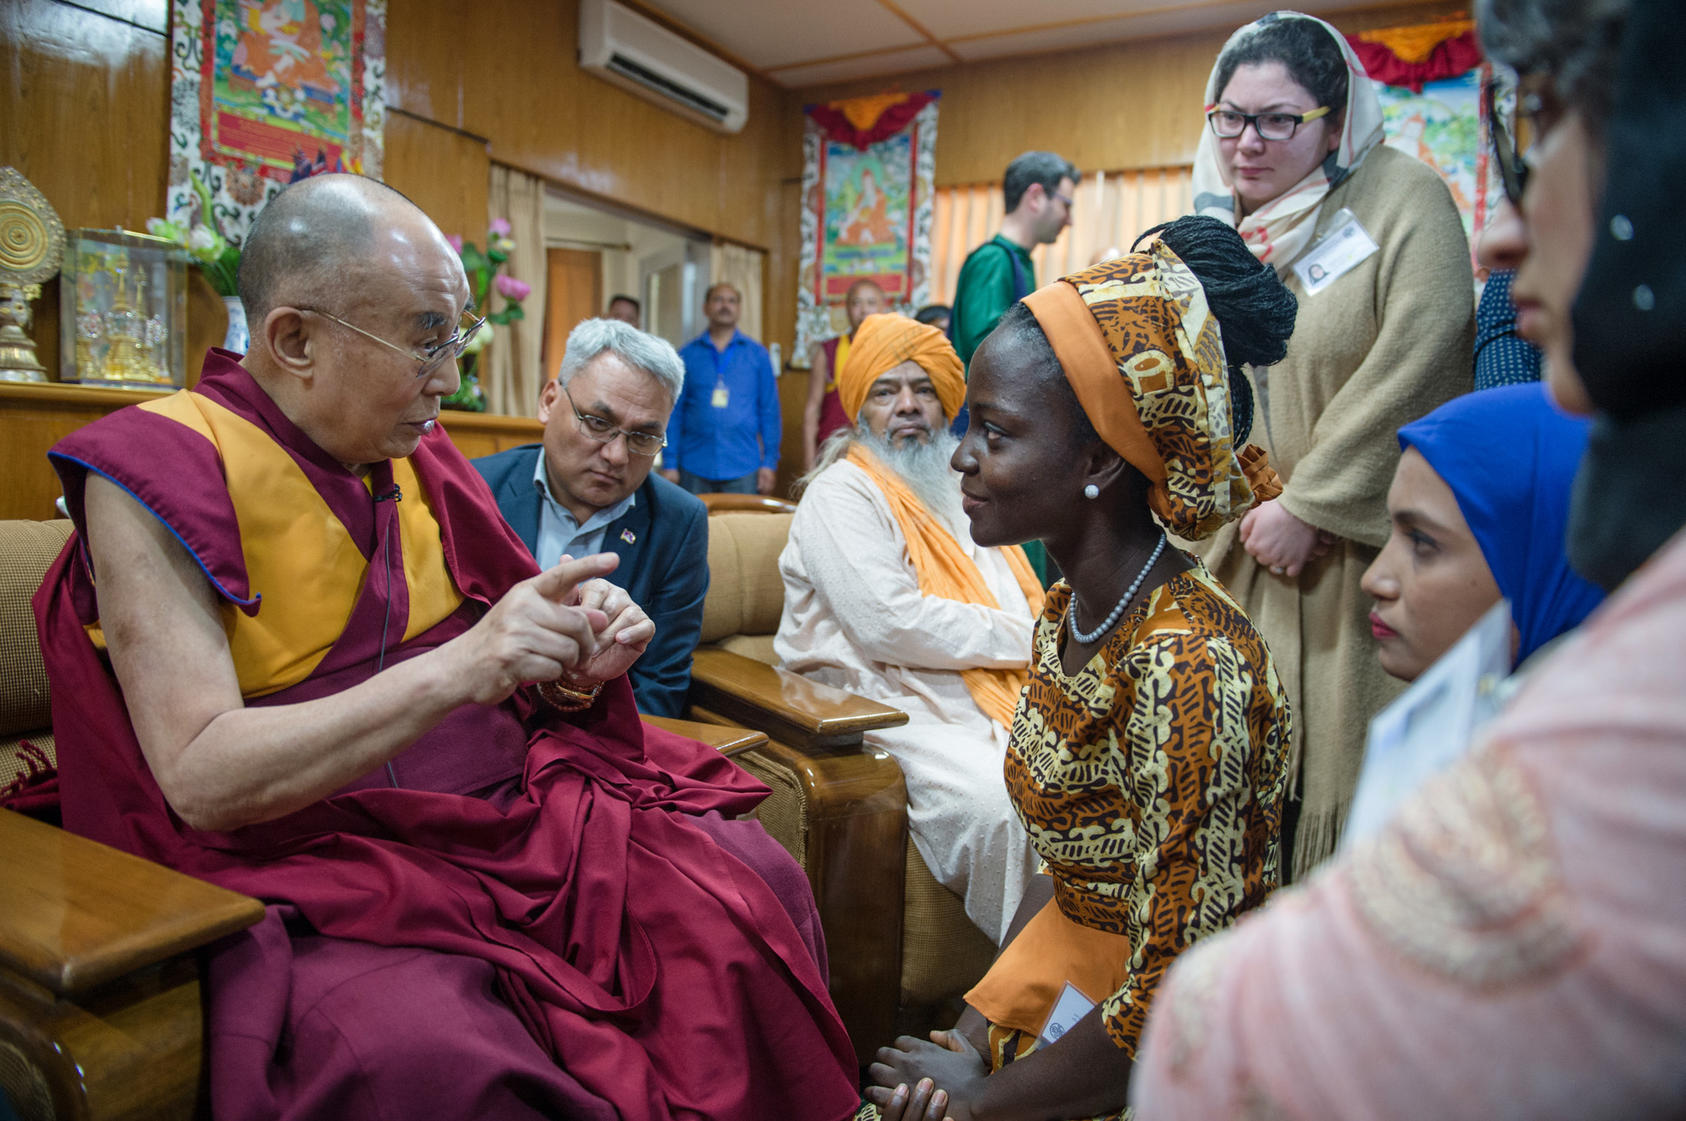 His Holiness the Dalai Lama serves cookies to young peace leaders during meetings with them at his residence in Dharamsala, India. Photo: Tenzin Choejor/OHHDL